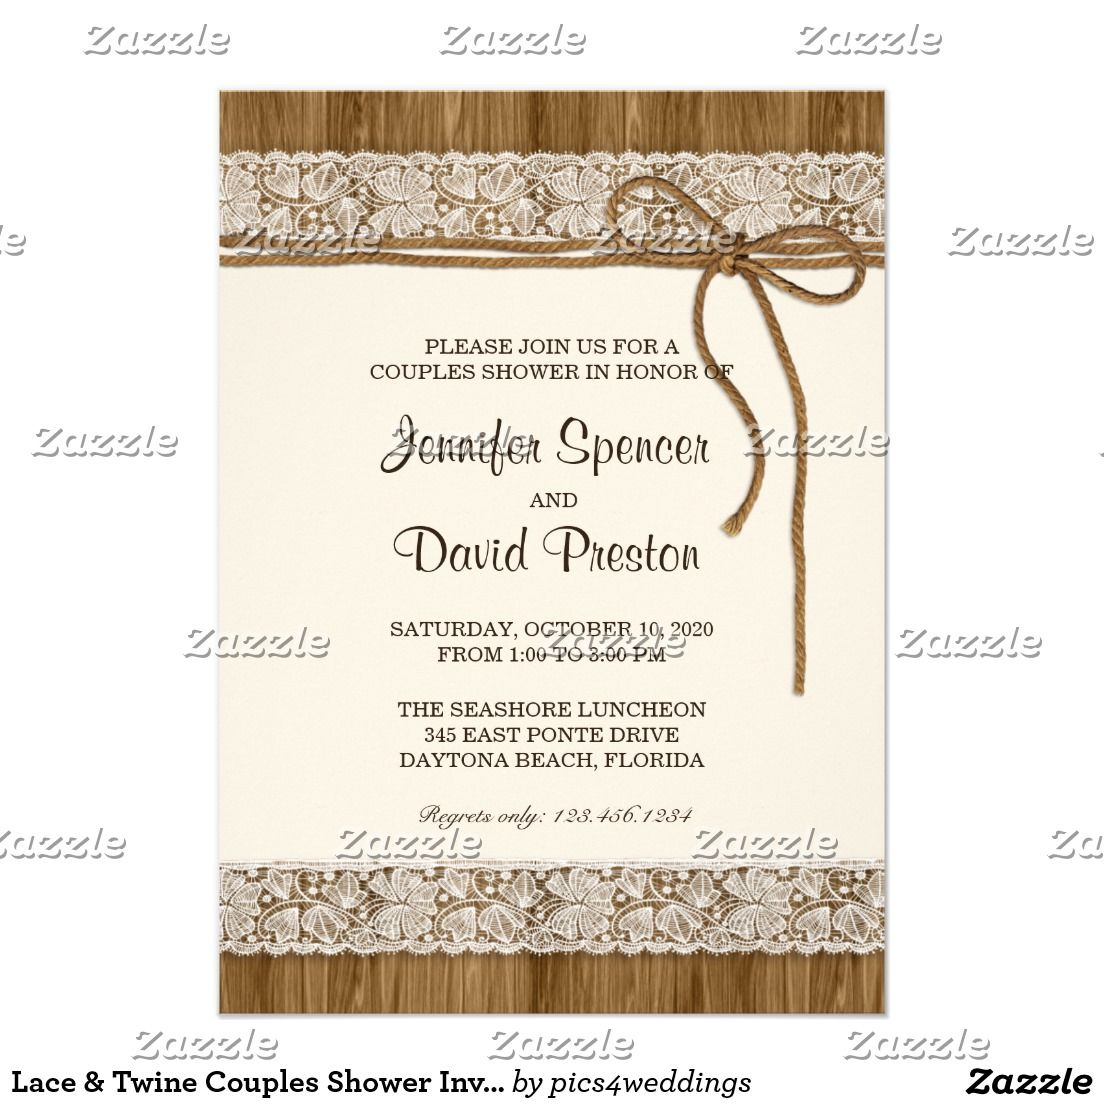 Lace & Twine Couples Shower Invitation | Couples shower invitations ...